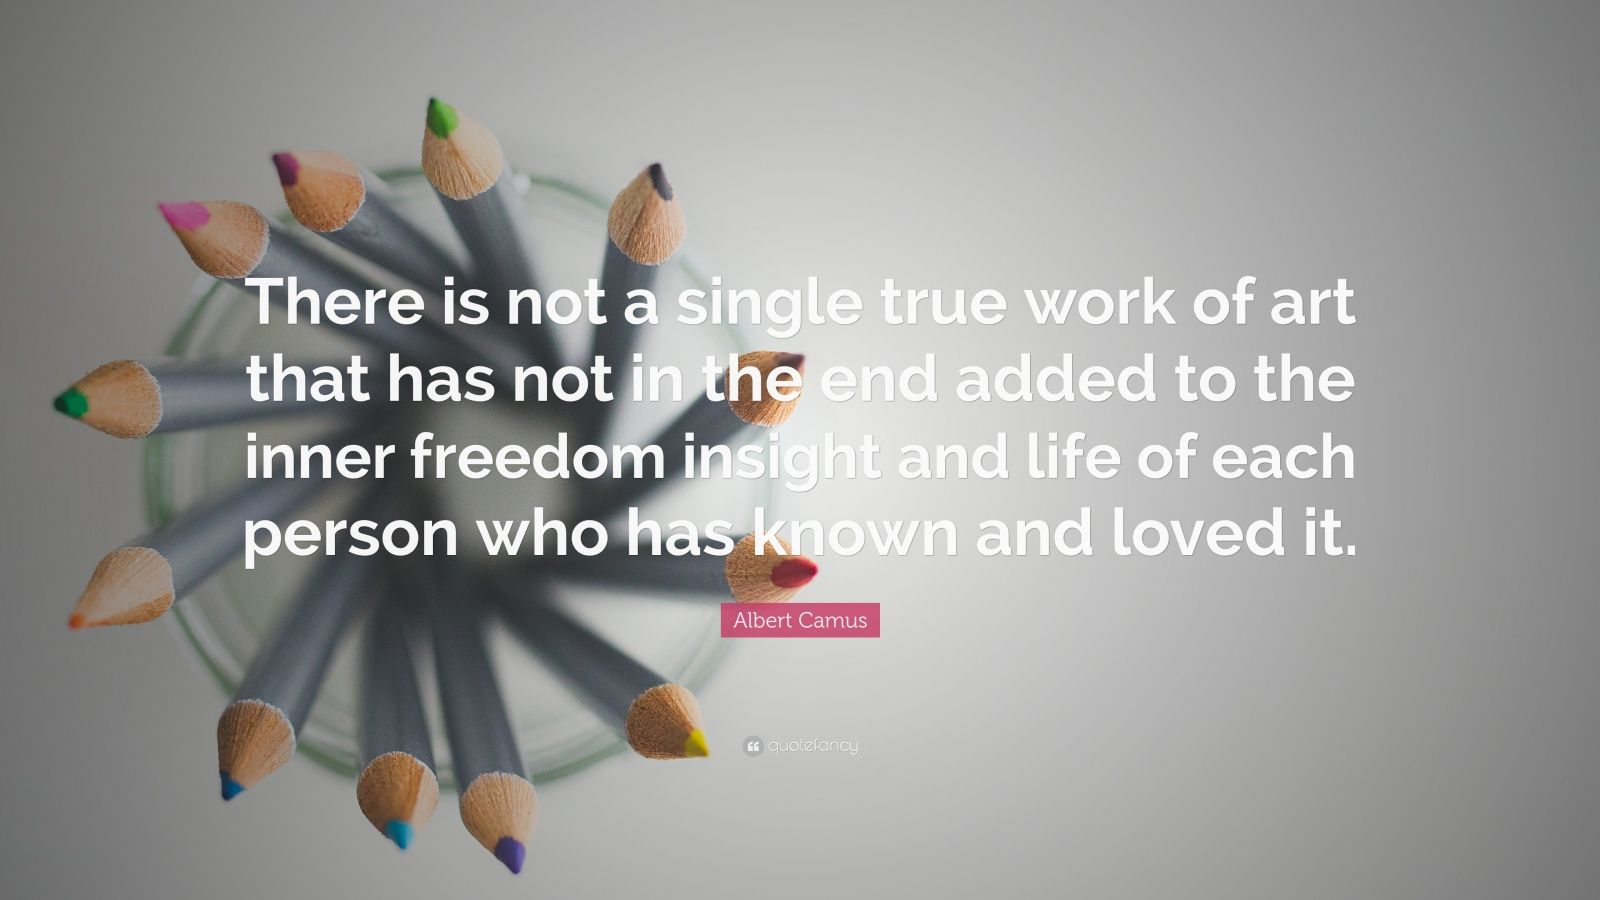 """Albert Camus Quote: """"There is not a single true work of art that has not in the end added to the inner freedom insight and life of each person who has known and loved it."""""""